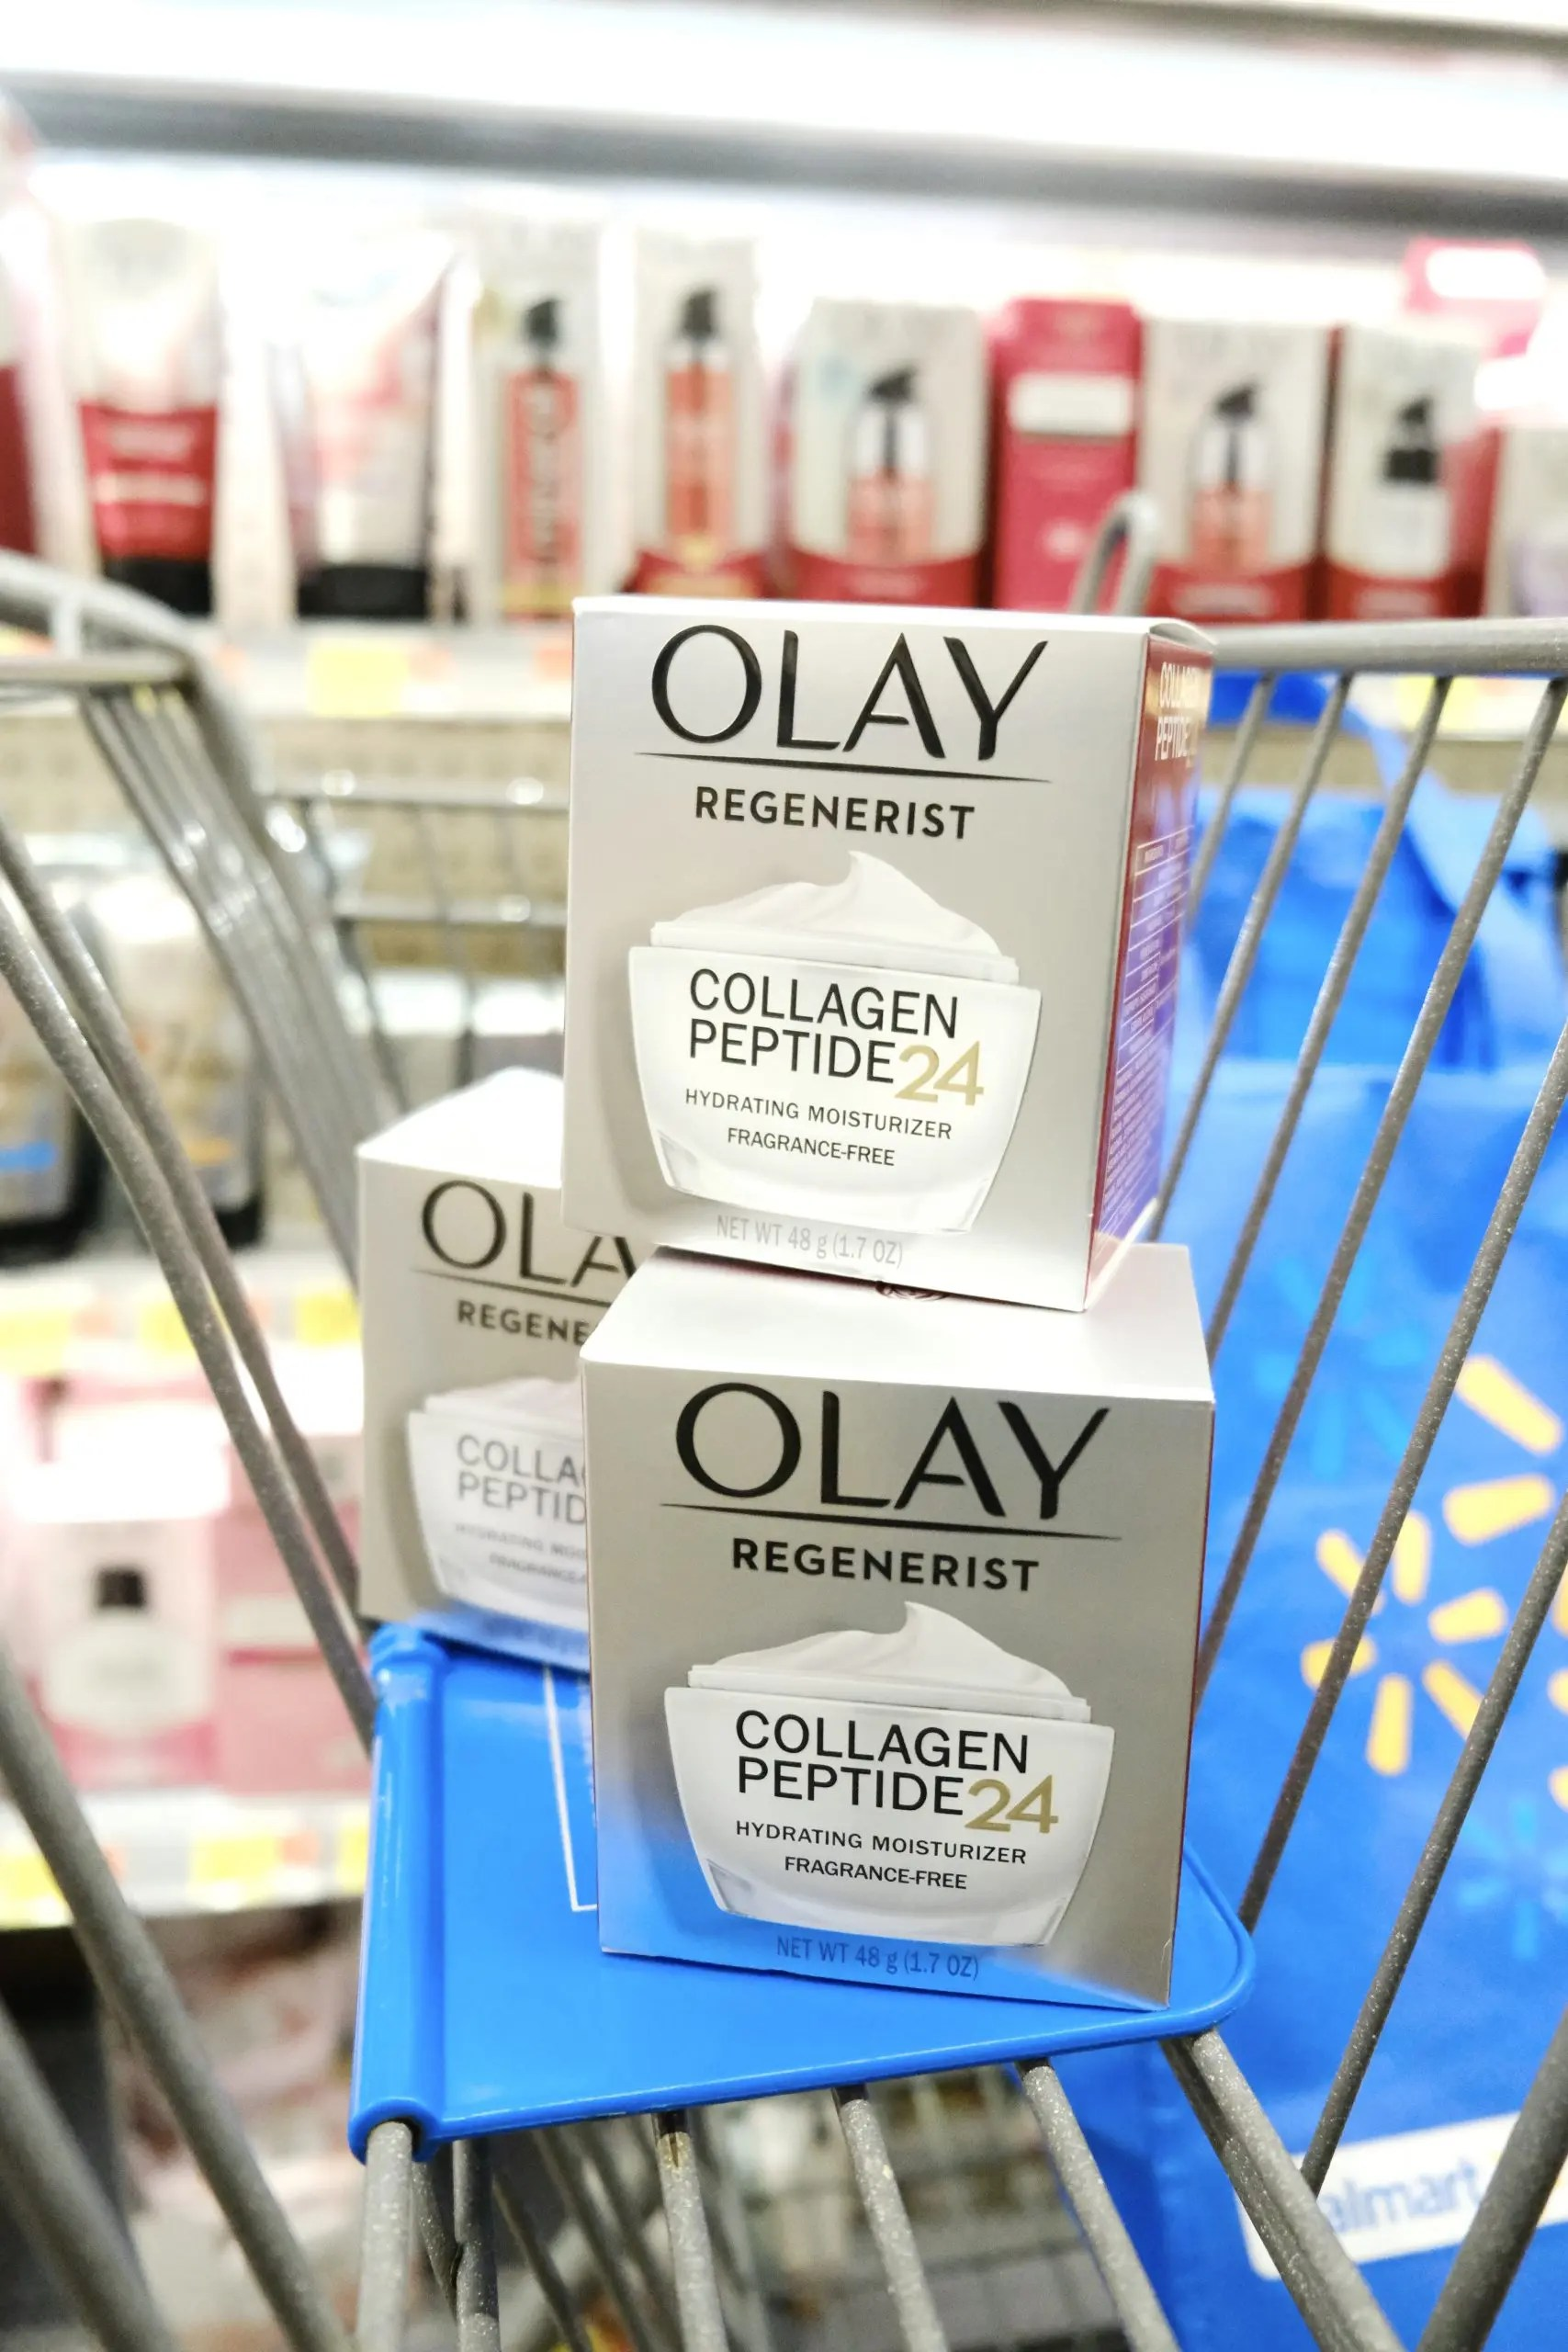 Olay Regenerist Collagen Peptide 24 + Ibotta Offer at Walmart